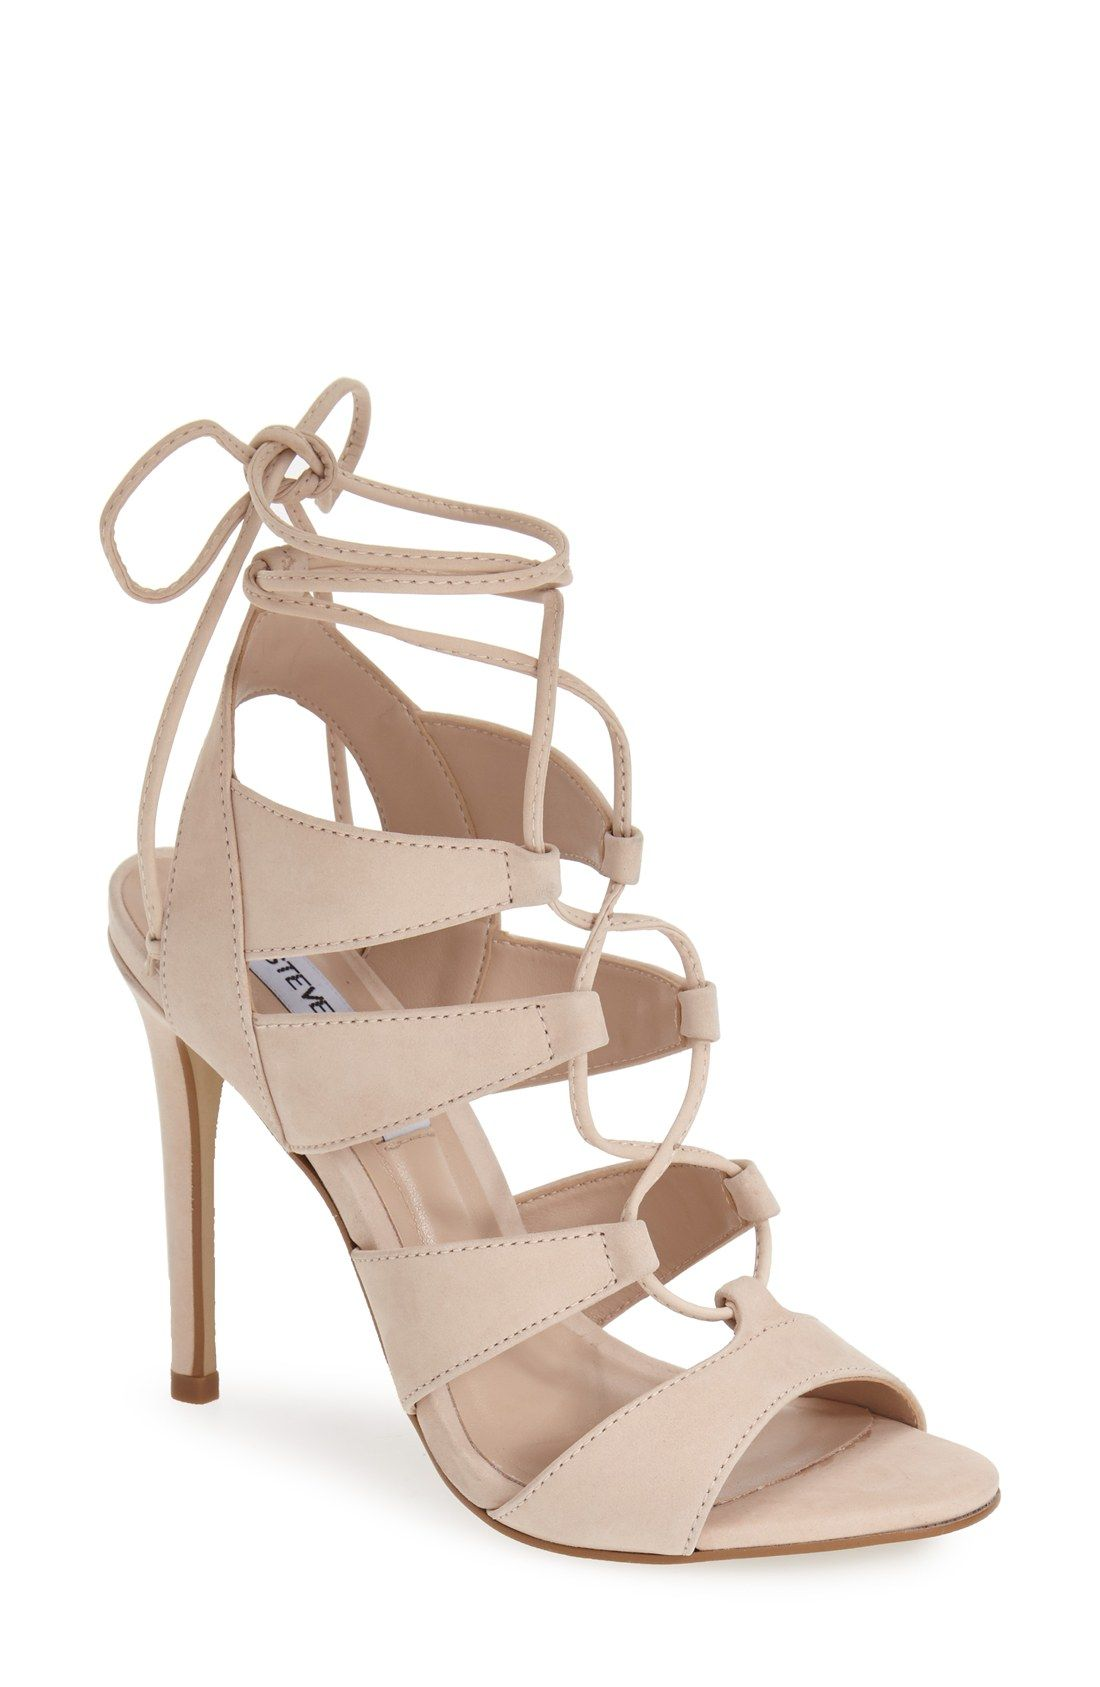 646c184b25e0d1 Crisscrossed laces corset the straps of this chic sandal lifted by a  stiletto heel in a gorgeous blush color.